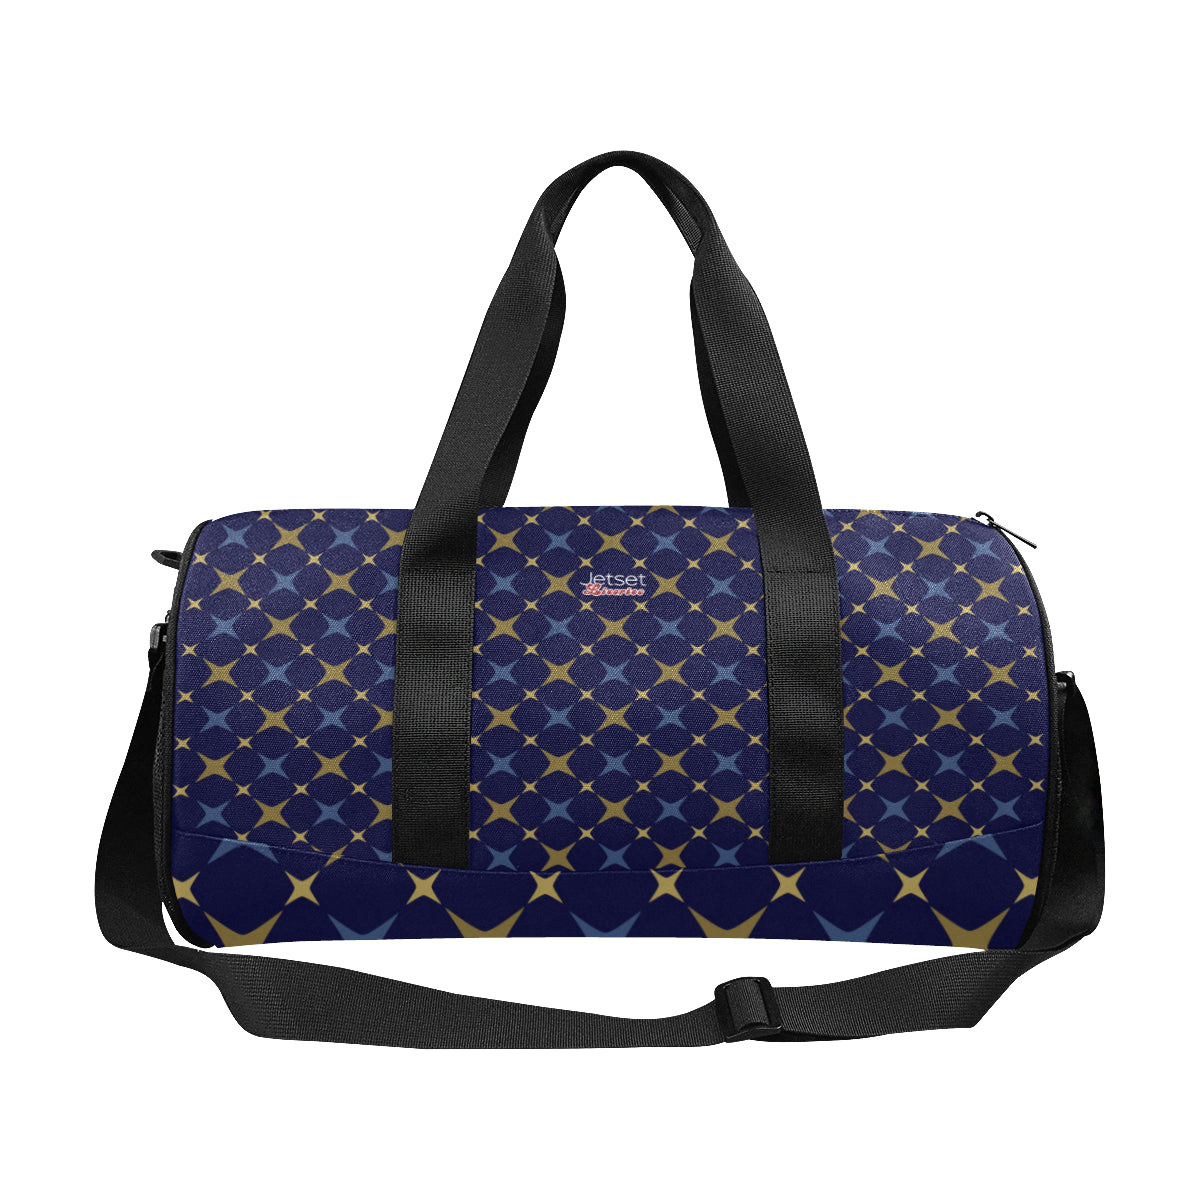 Jetset Licorice Designer Collection duffle bag (blue-blue) - Resort Pop